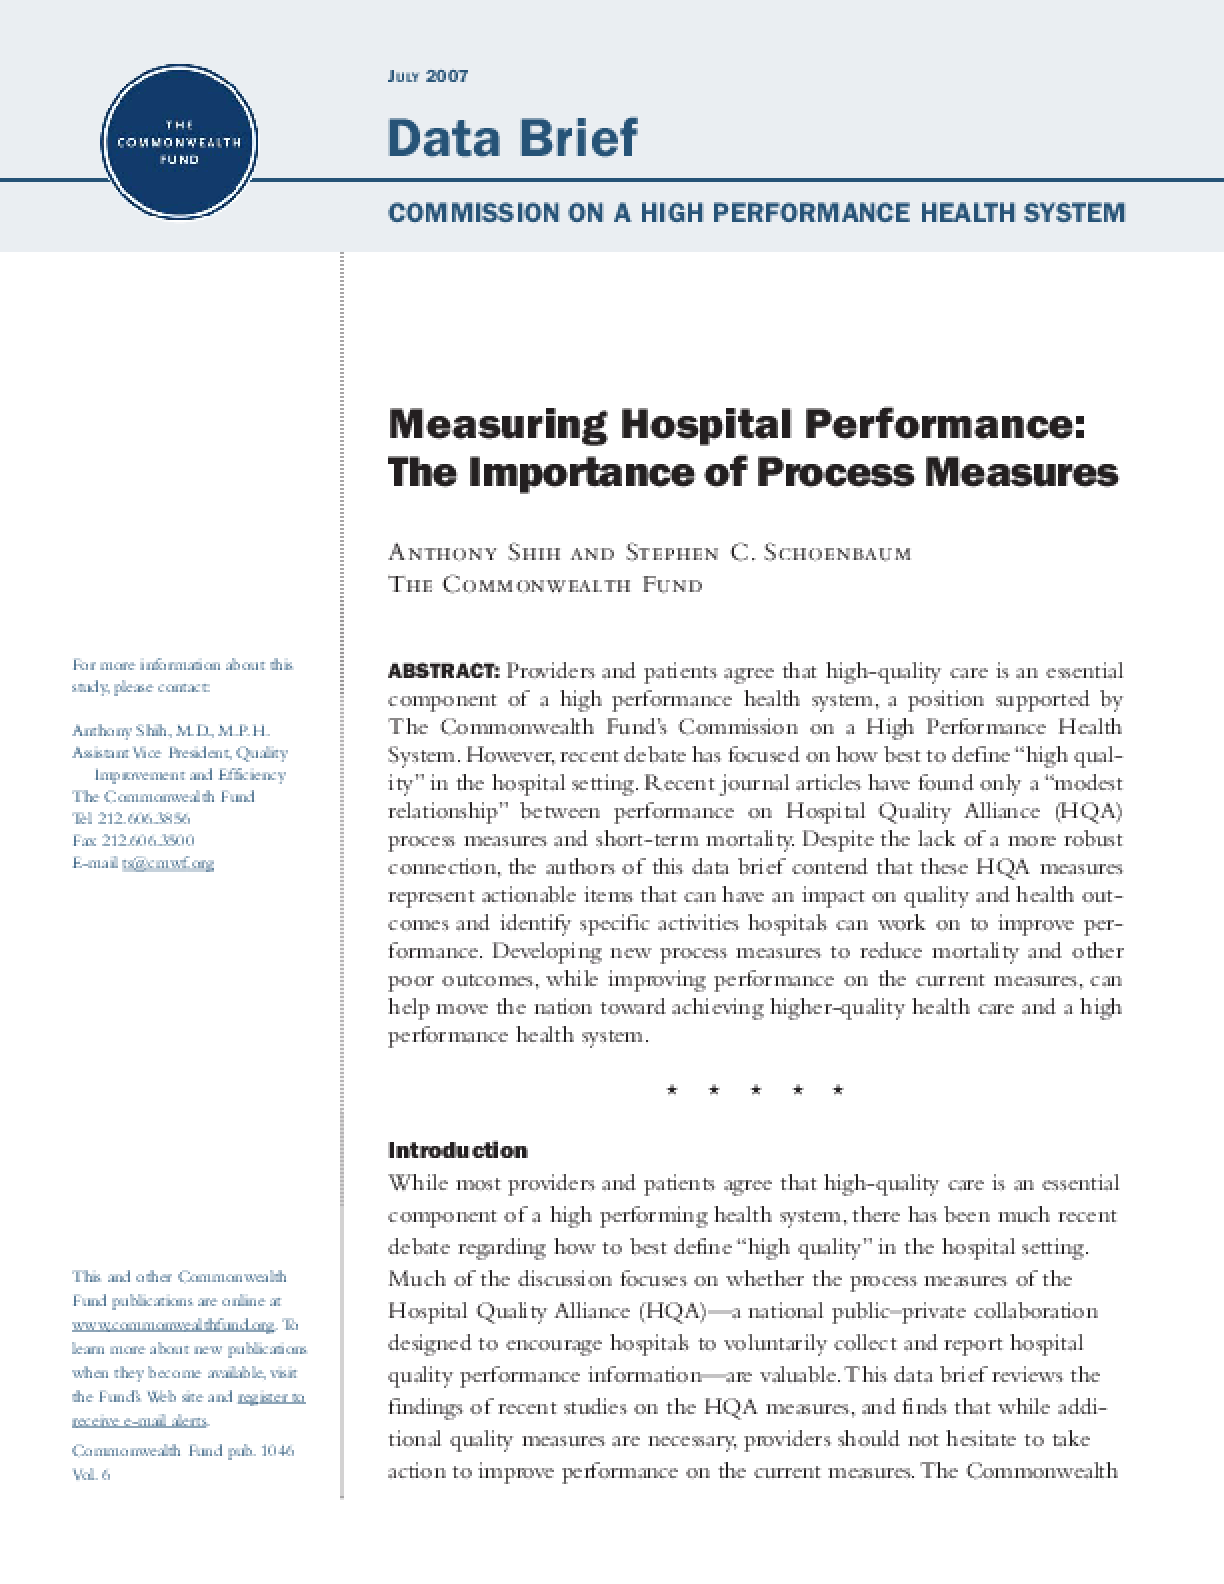 Measuring Hospital Performance: The Importance of Process Measures